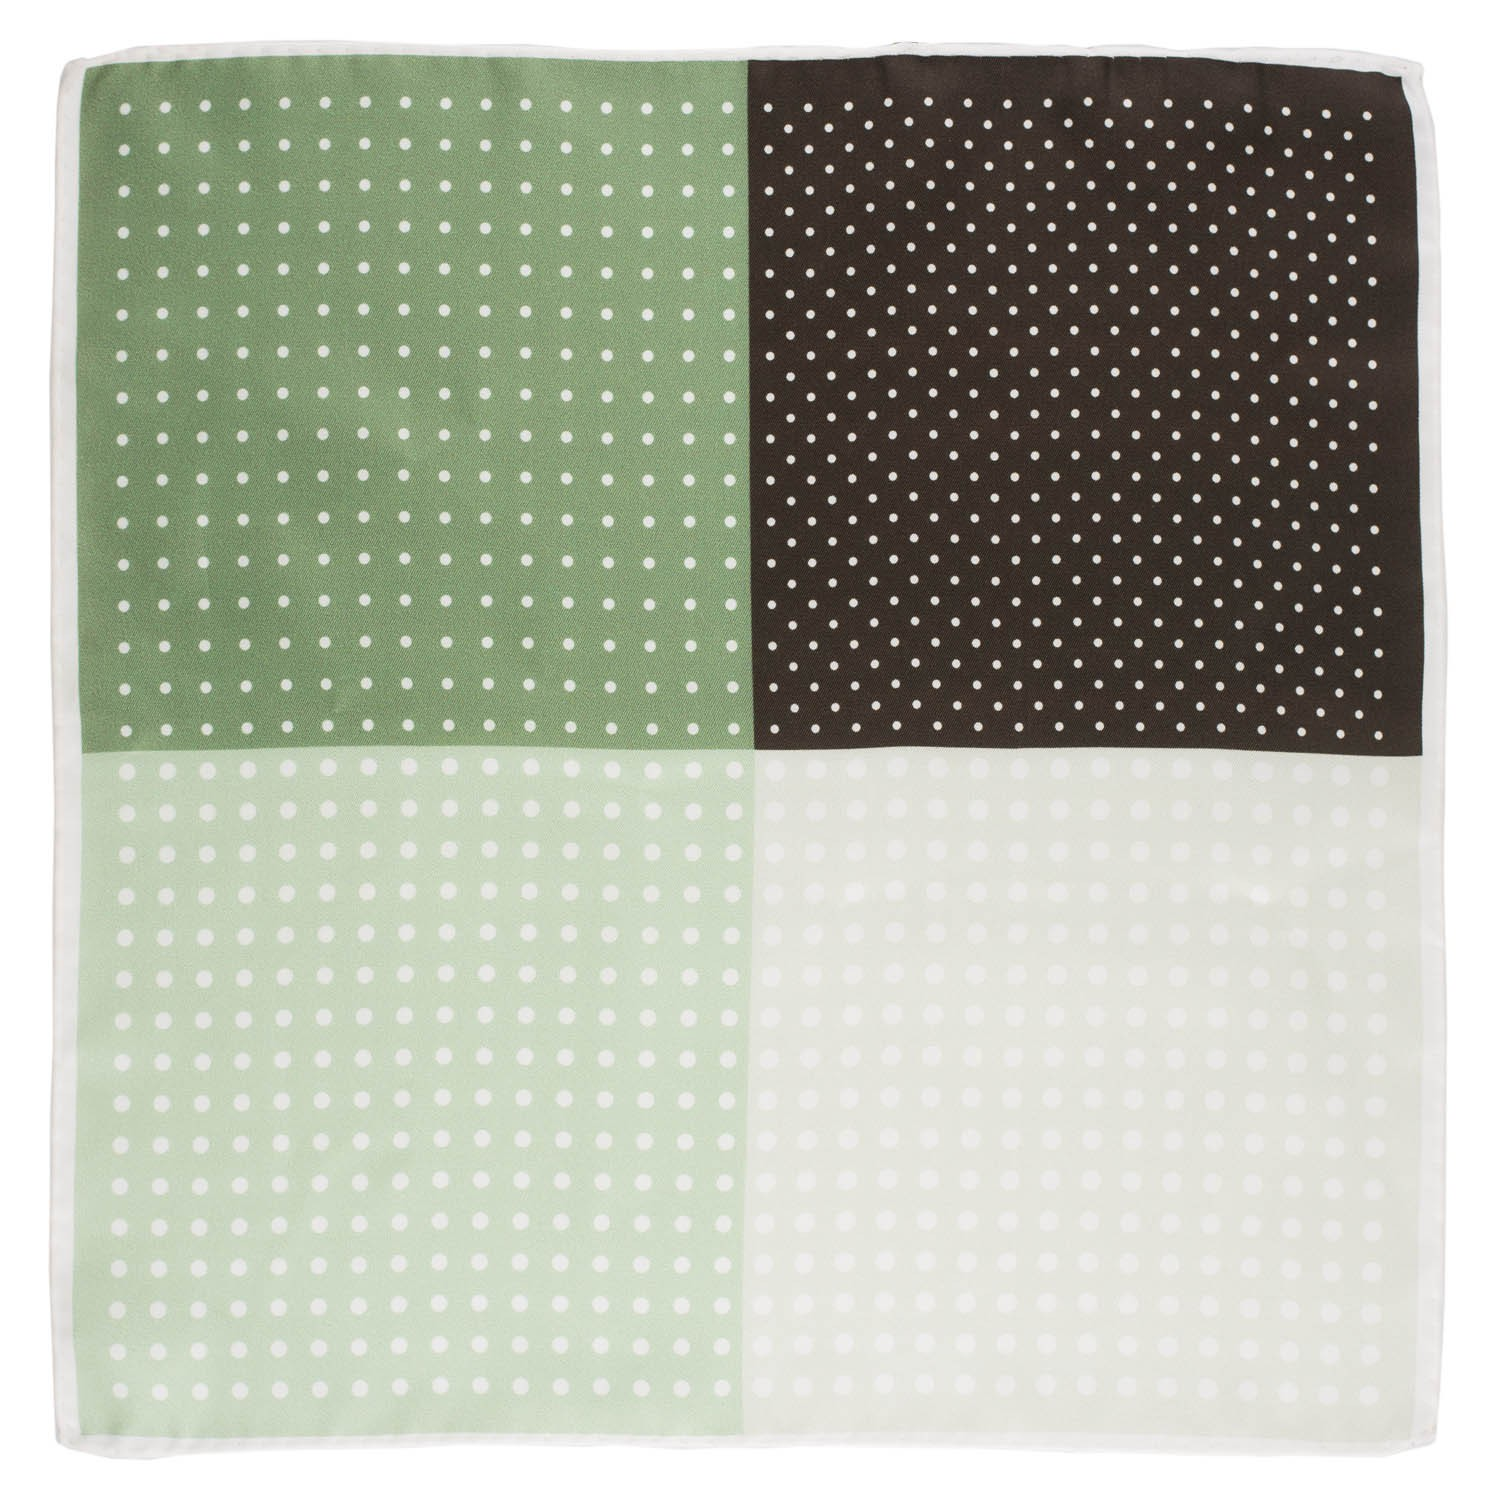 Four Square Polka Black And Green Silk Pocket Square For Men By The Tie Hub